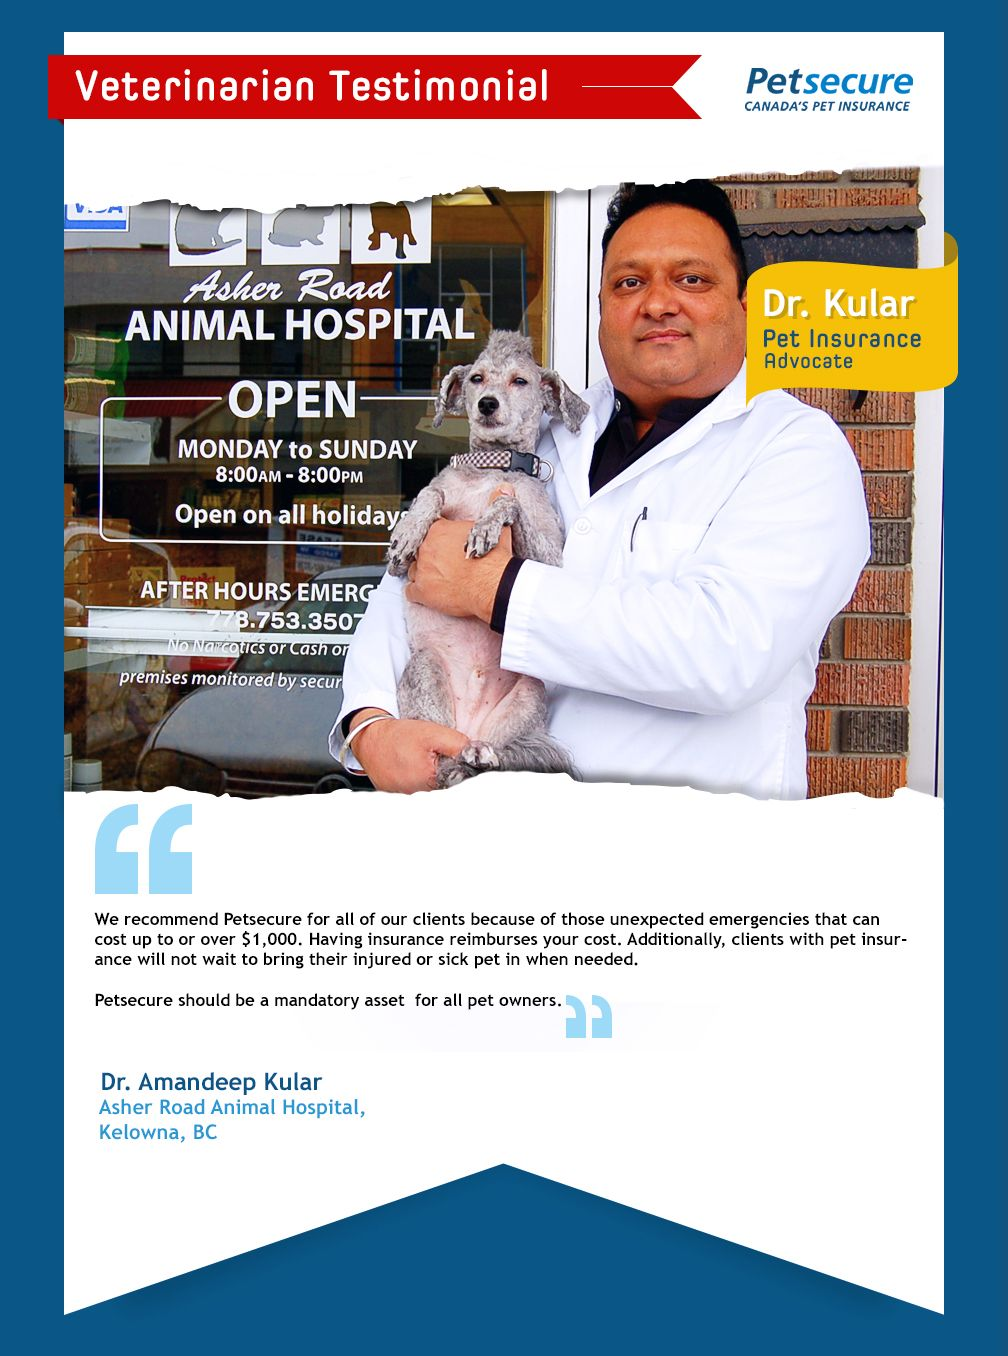 Here are some kind words about Petsecure from Dr. Kular at